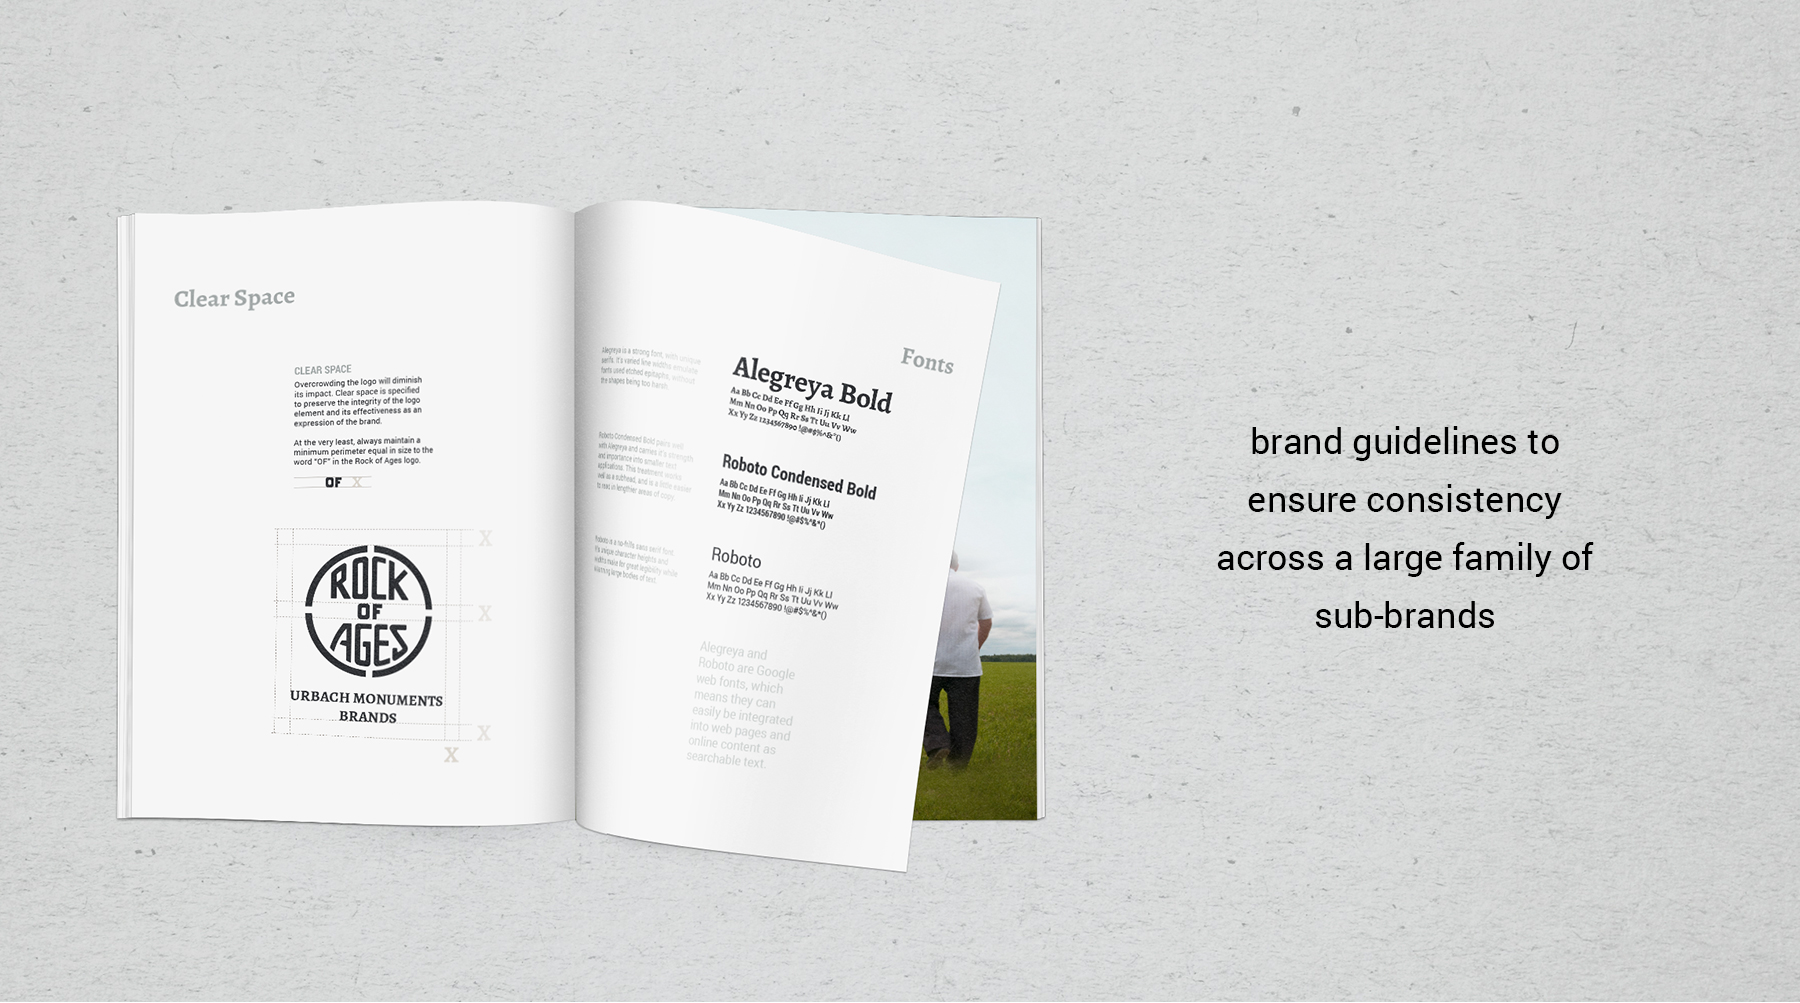 Brand guidelines to ensure consistency across a large family of sub-brands.